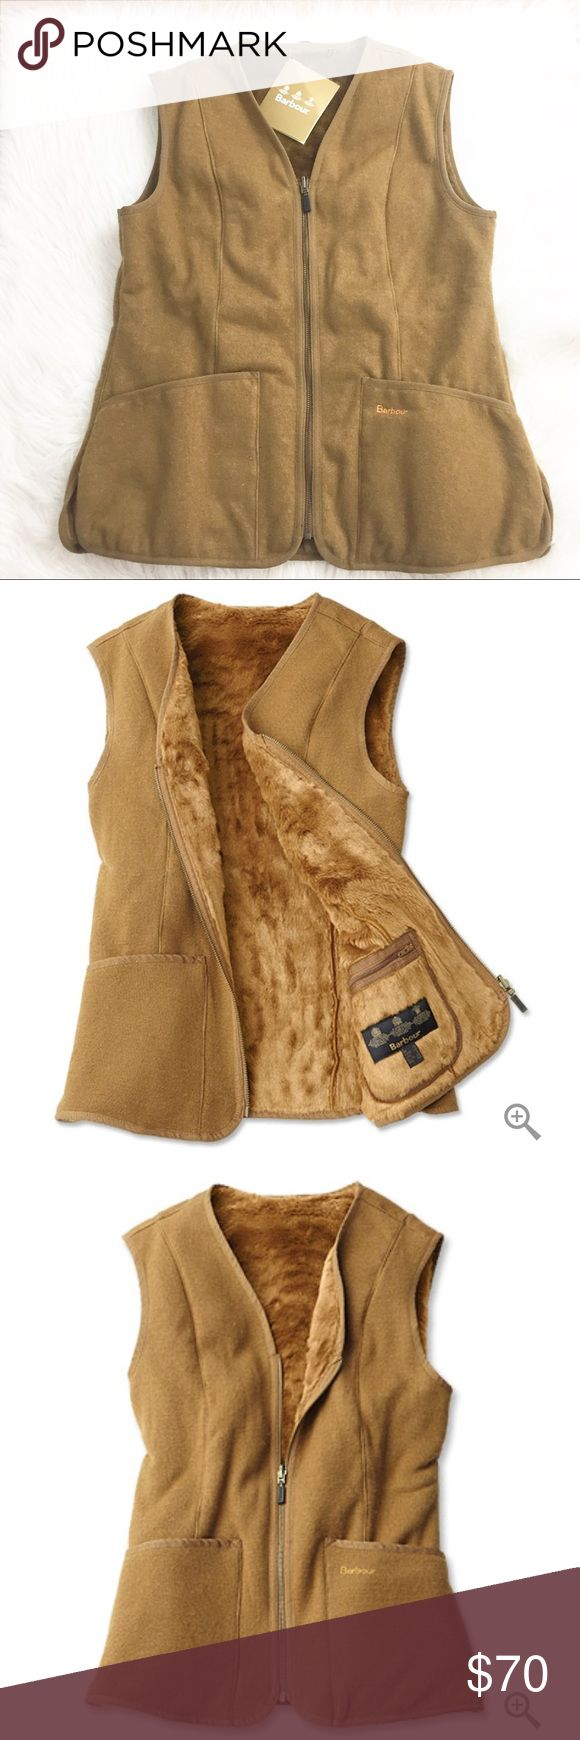 NWT Barbour Bower Fur Lined Vest Liner Brand new with tags. Extremely high quality. Fur lined. Currently selling online for $119+ Barbour Jackets & Coats Vests